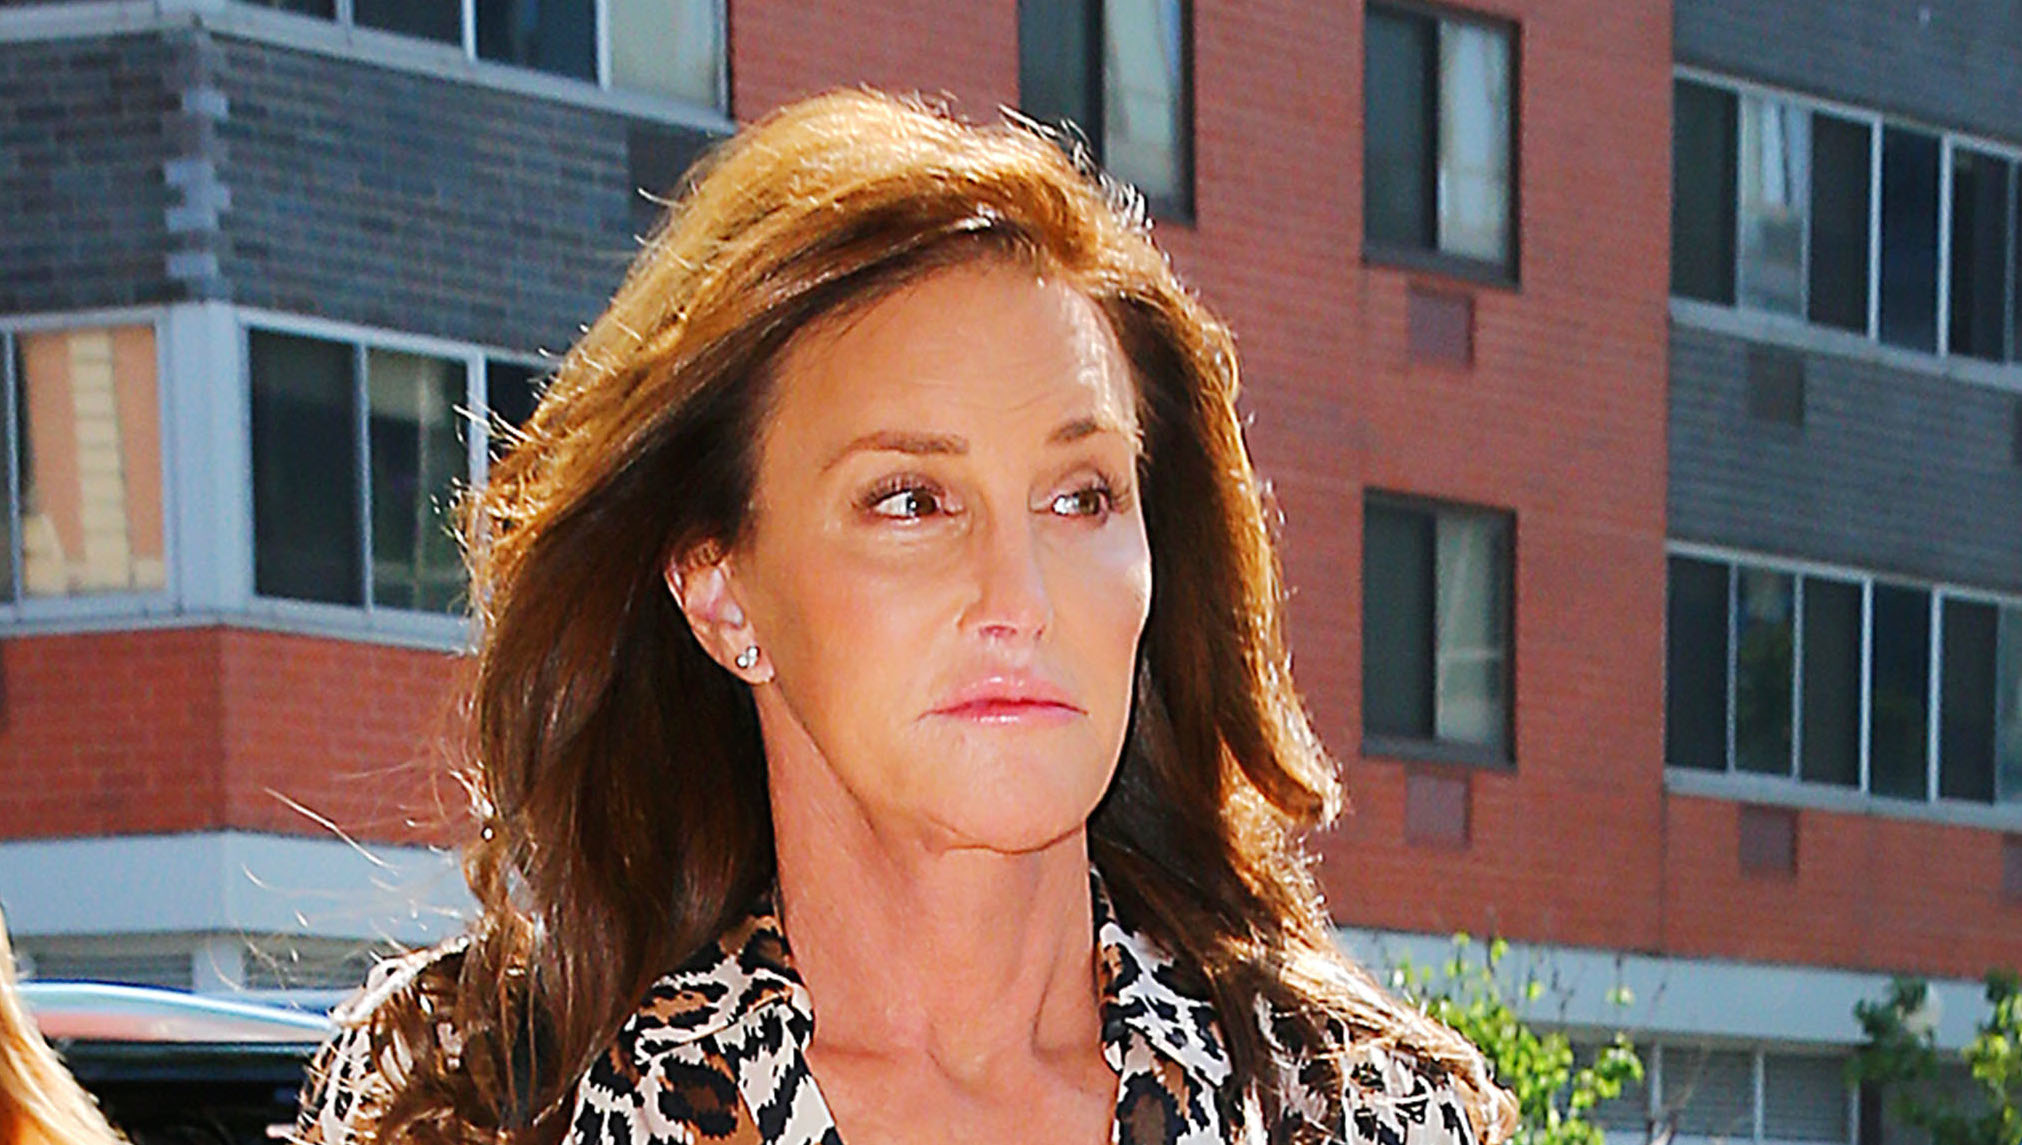 Caitlyn Jenner goes in New York City with a friend